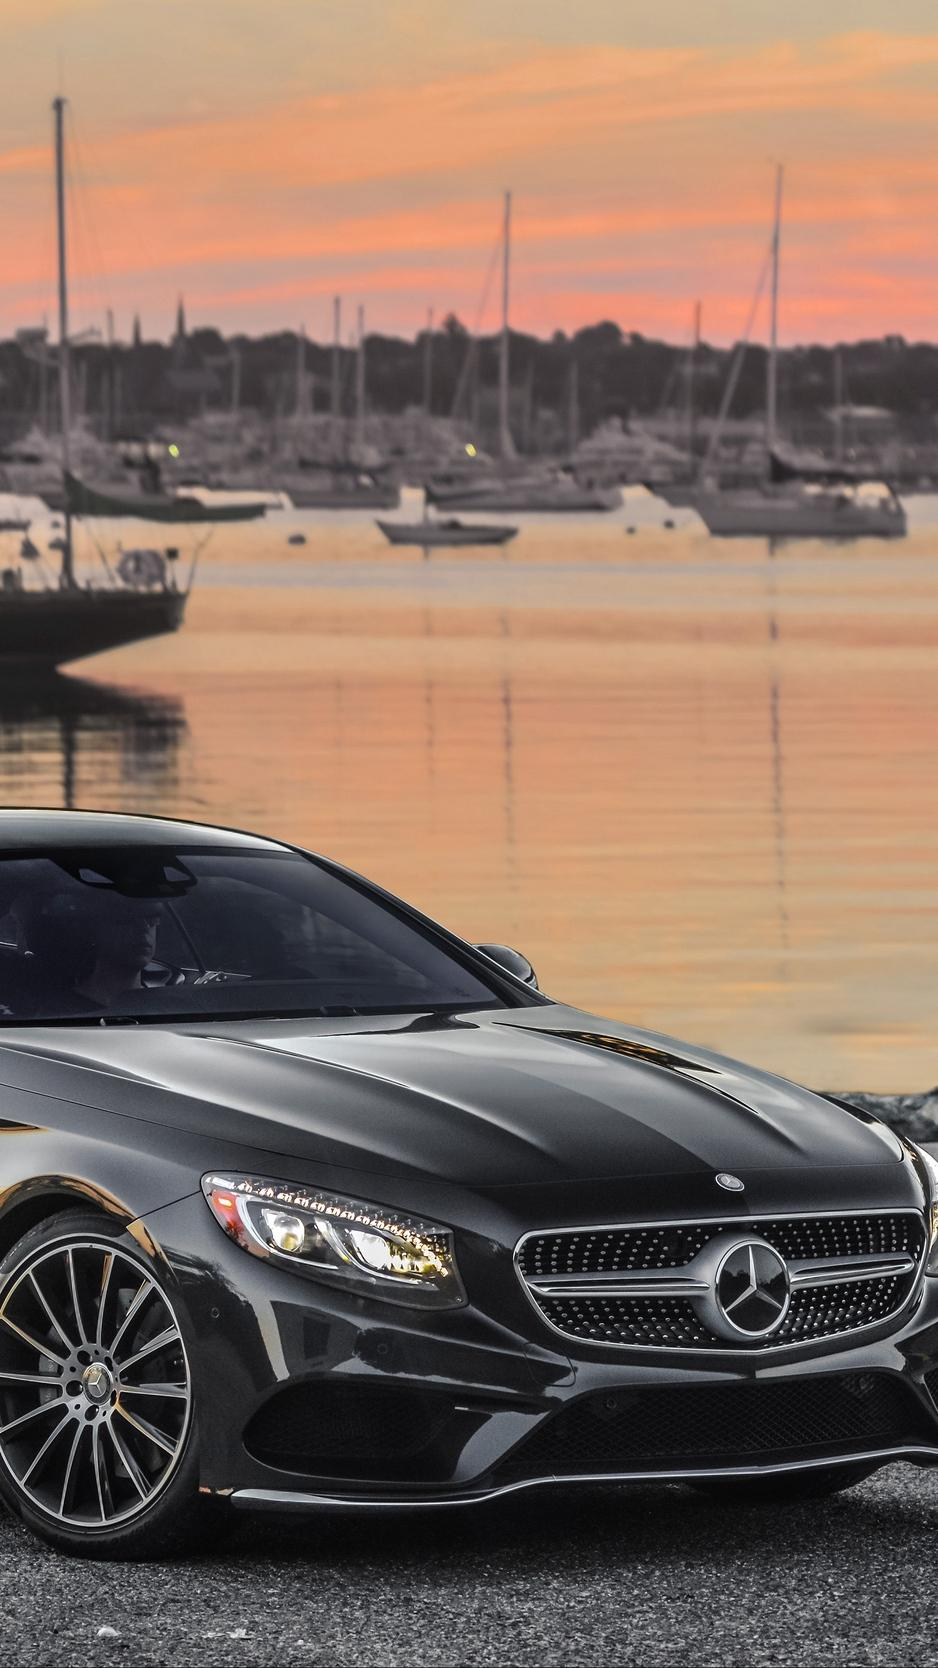 Download Amg Iphone Wallpaper Hd Backgrounds Download Itlcat